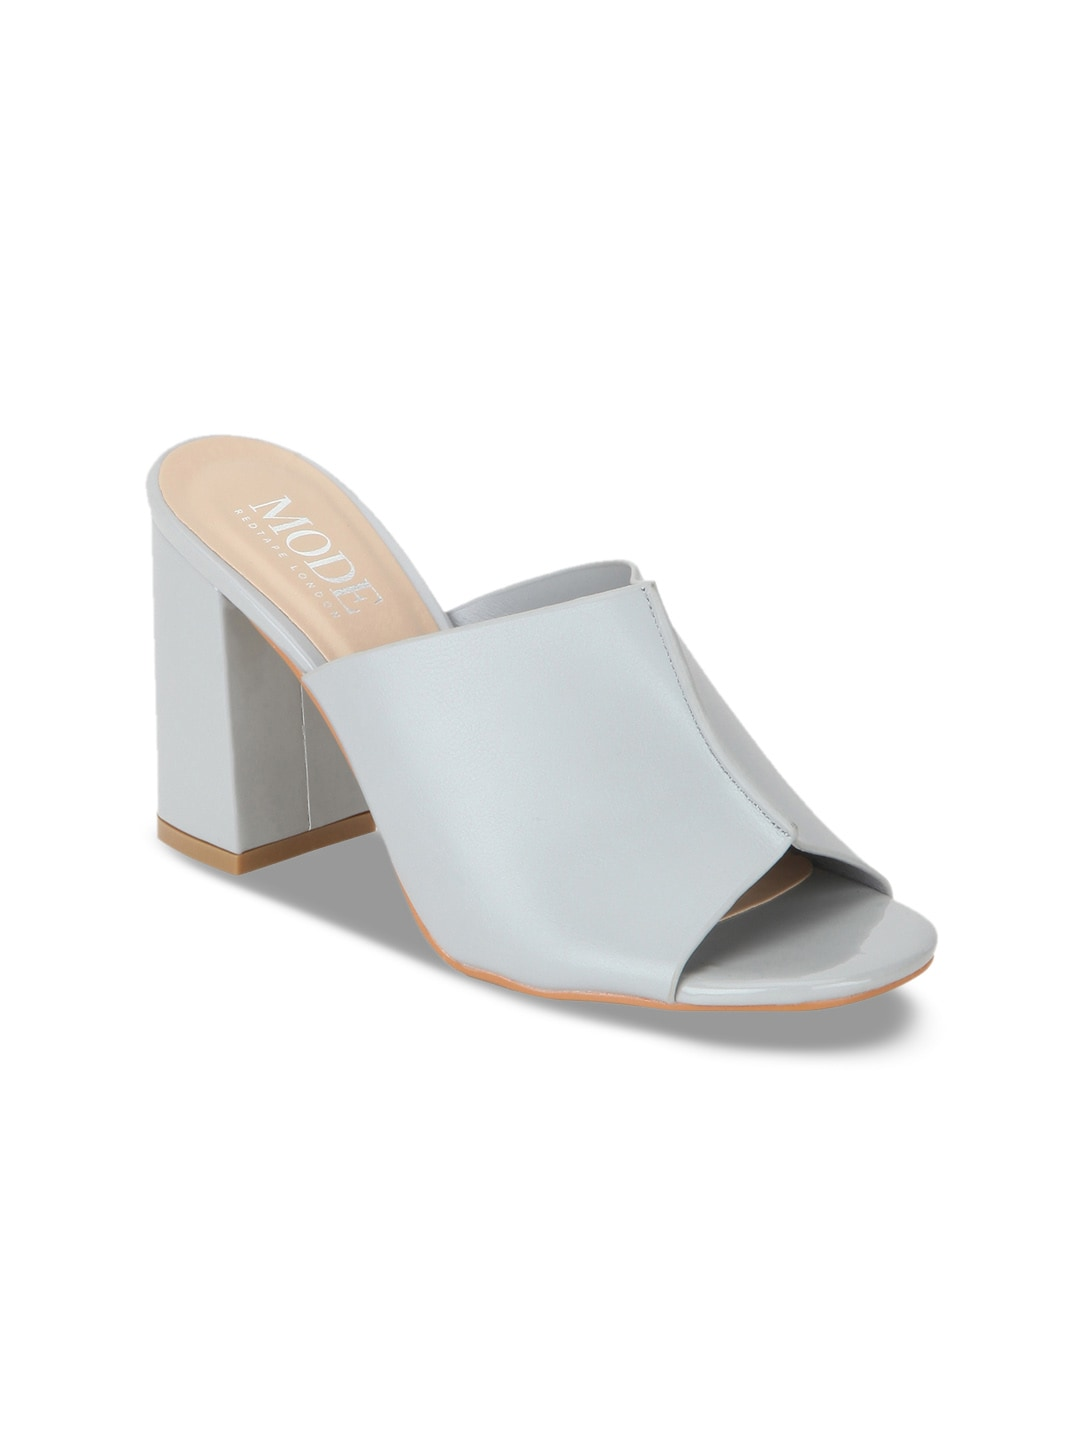 64d6d8aeba0 Mode by Red Tape Women Grey Solid Heels